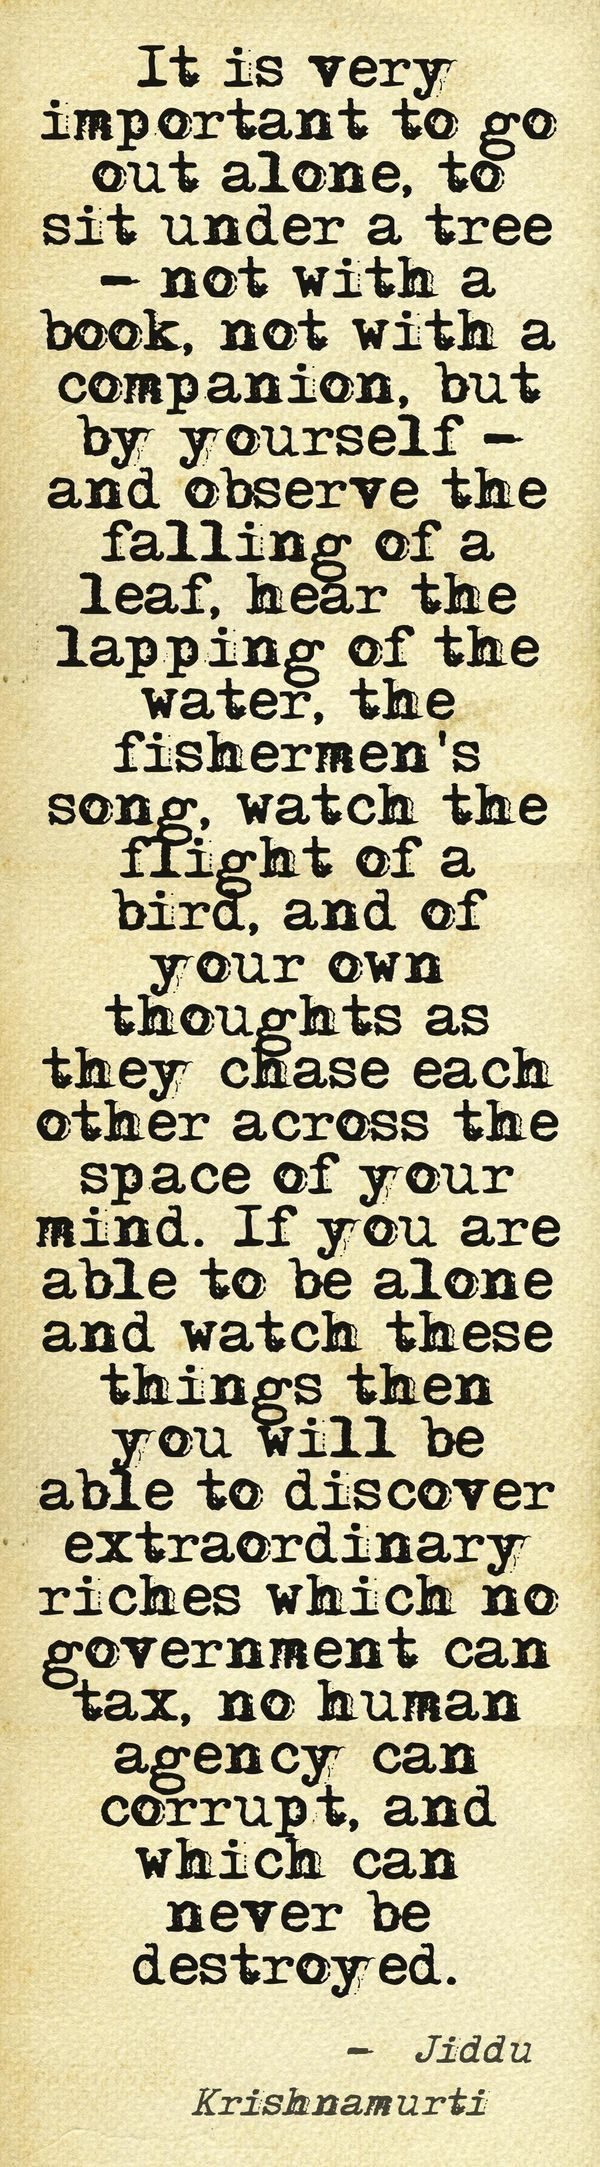 Observe things in your own time and place all alone.